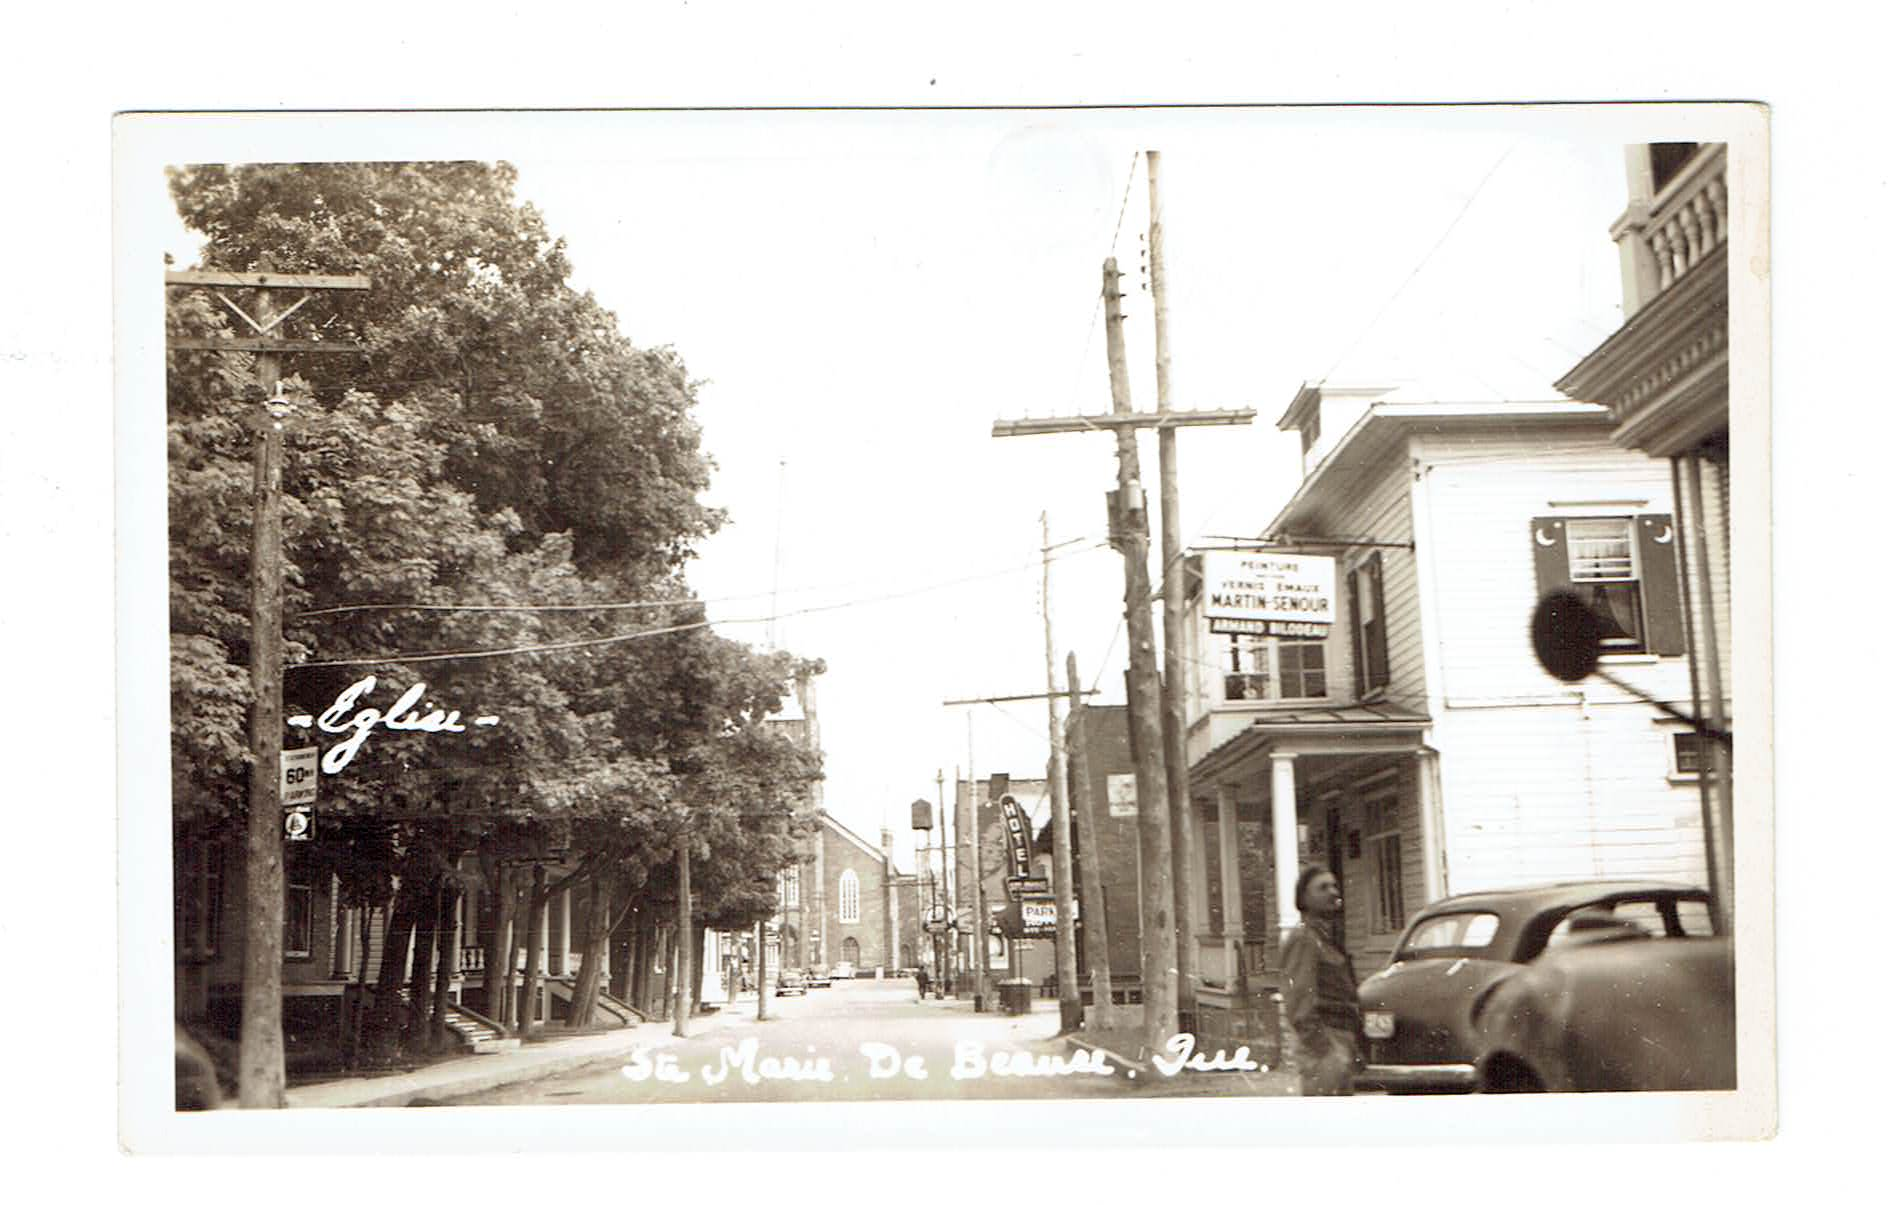 PQ, St Marie de Beauce. Street Scene With Church. RPPC Postcard. Canada